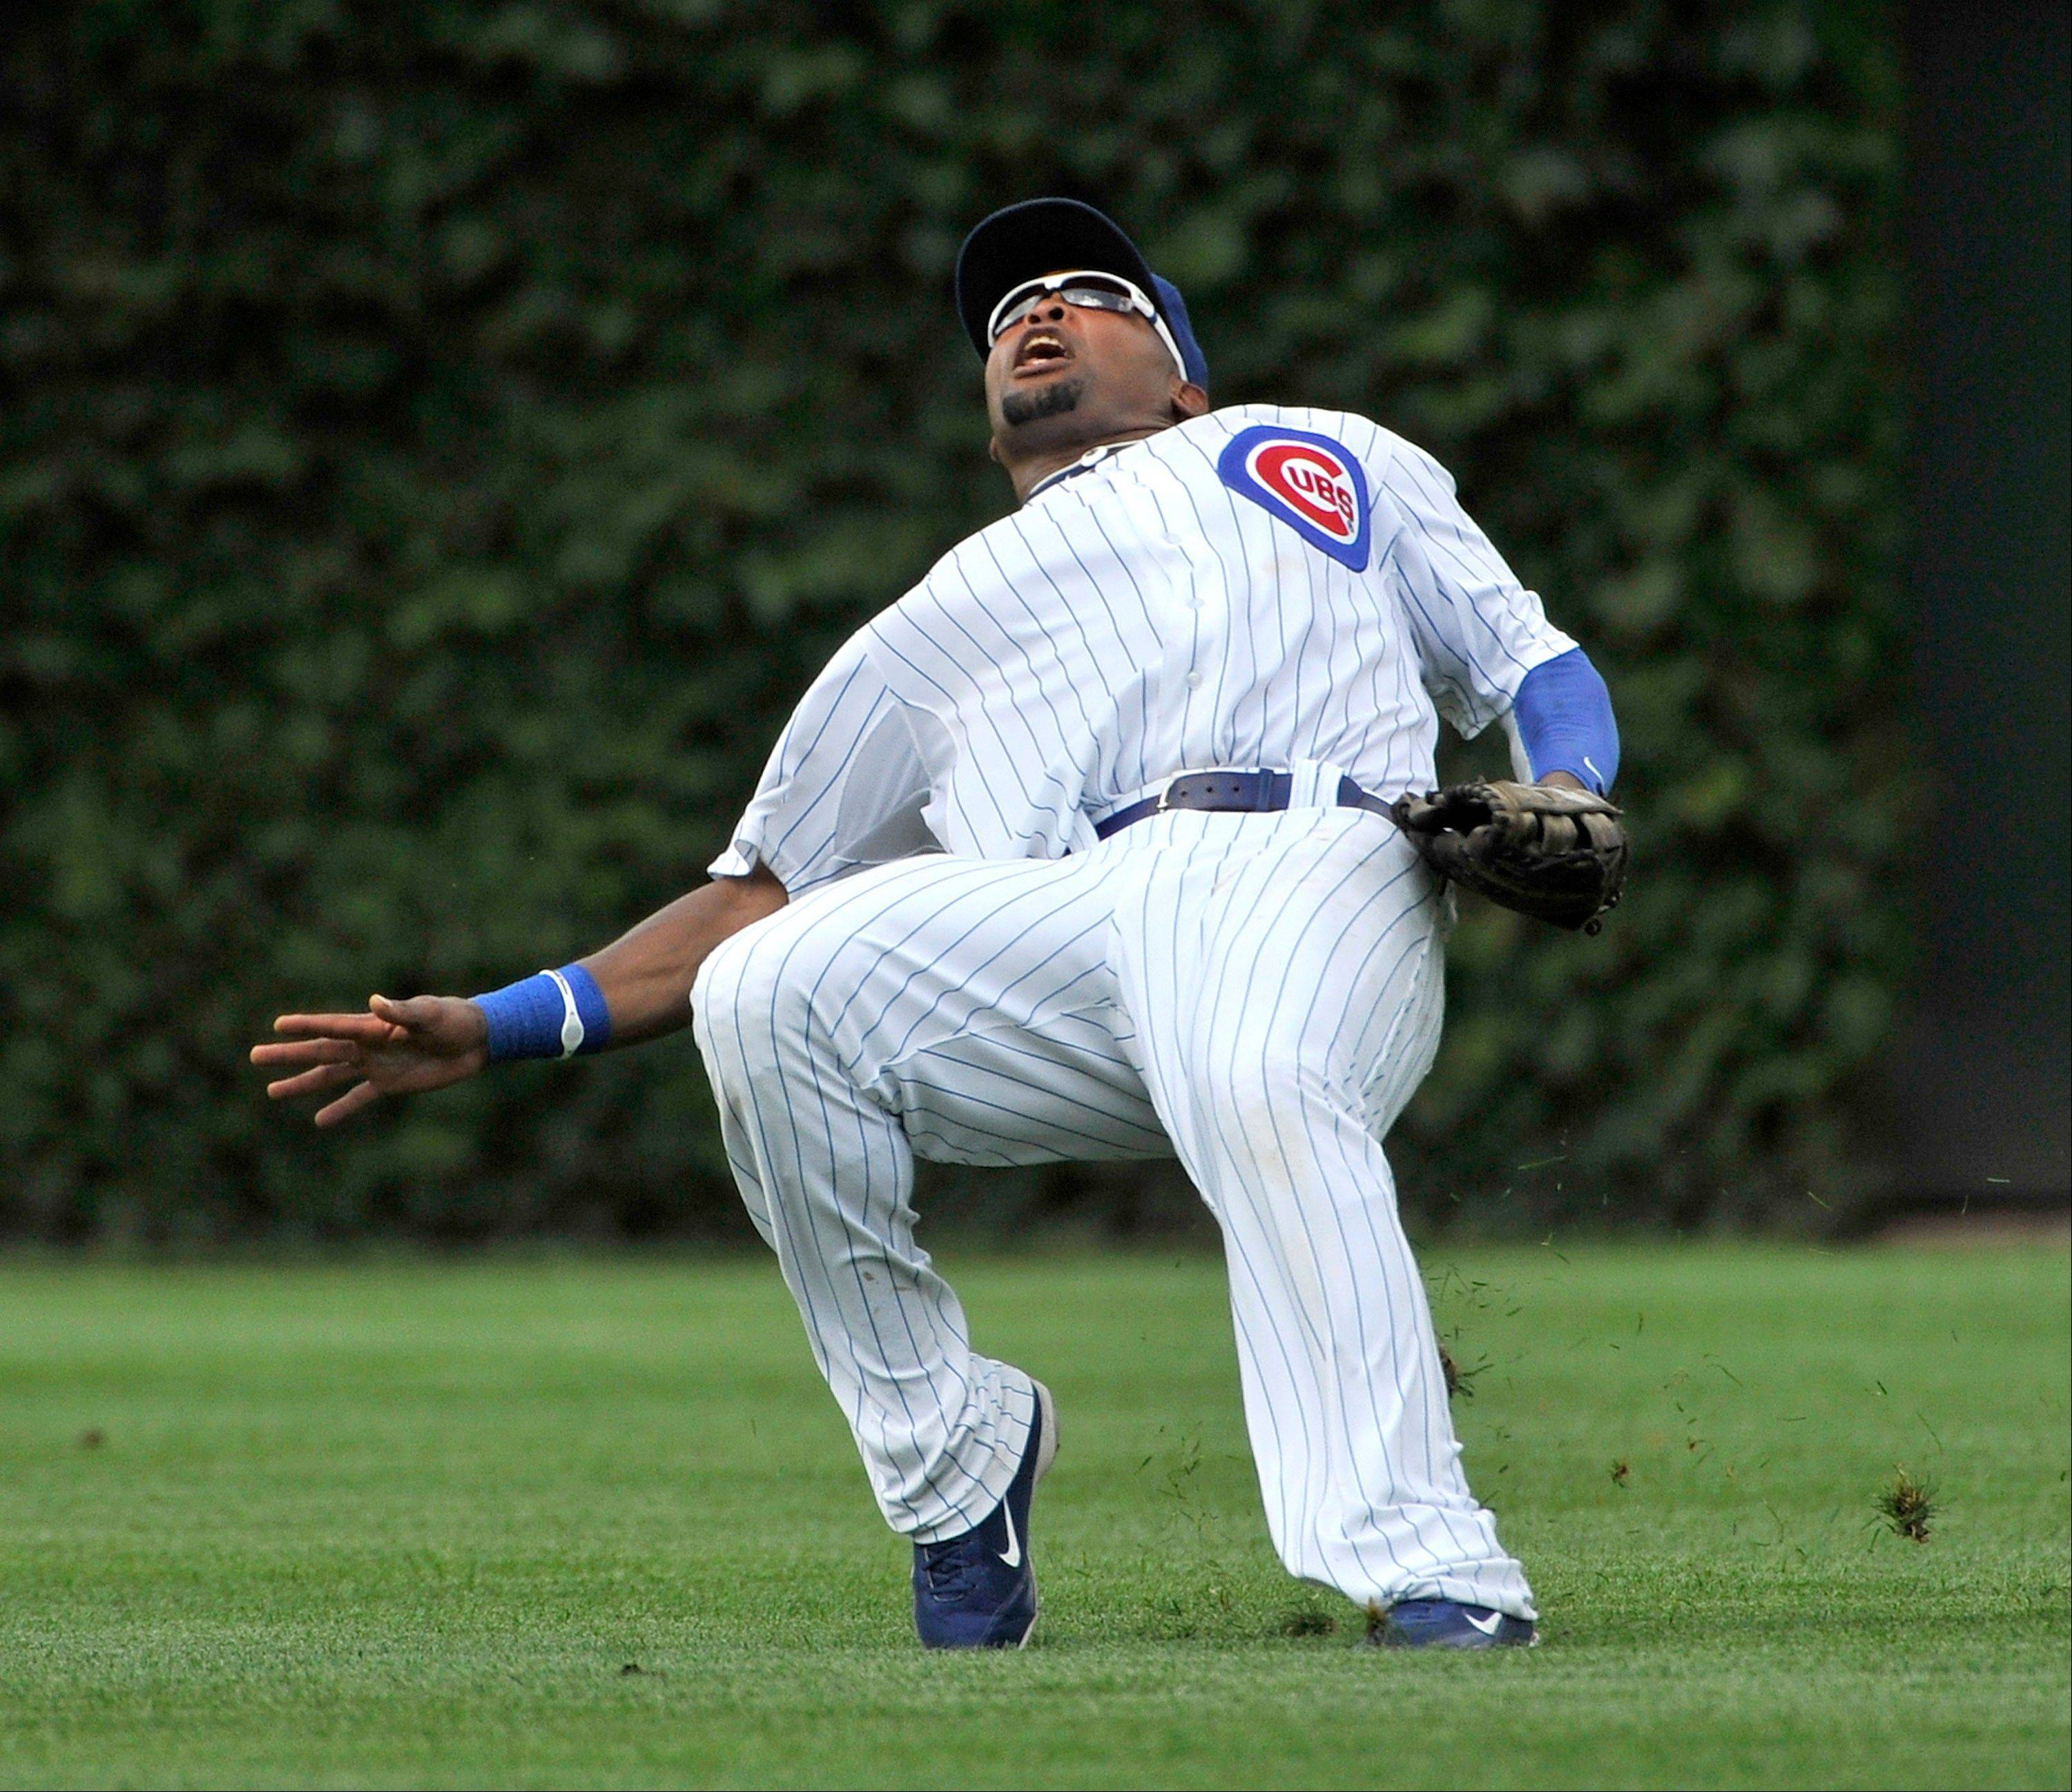 Cubs center fielder Marlon Byrd slips on the wet outfield grass while chasing a Joey Votto pop fly leading off the eighth inning Sunday. The ball fell in for a double and the Reds went on to score the go-ahead run in the inning.